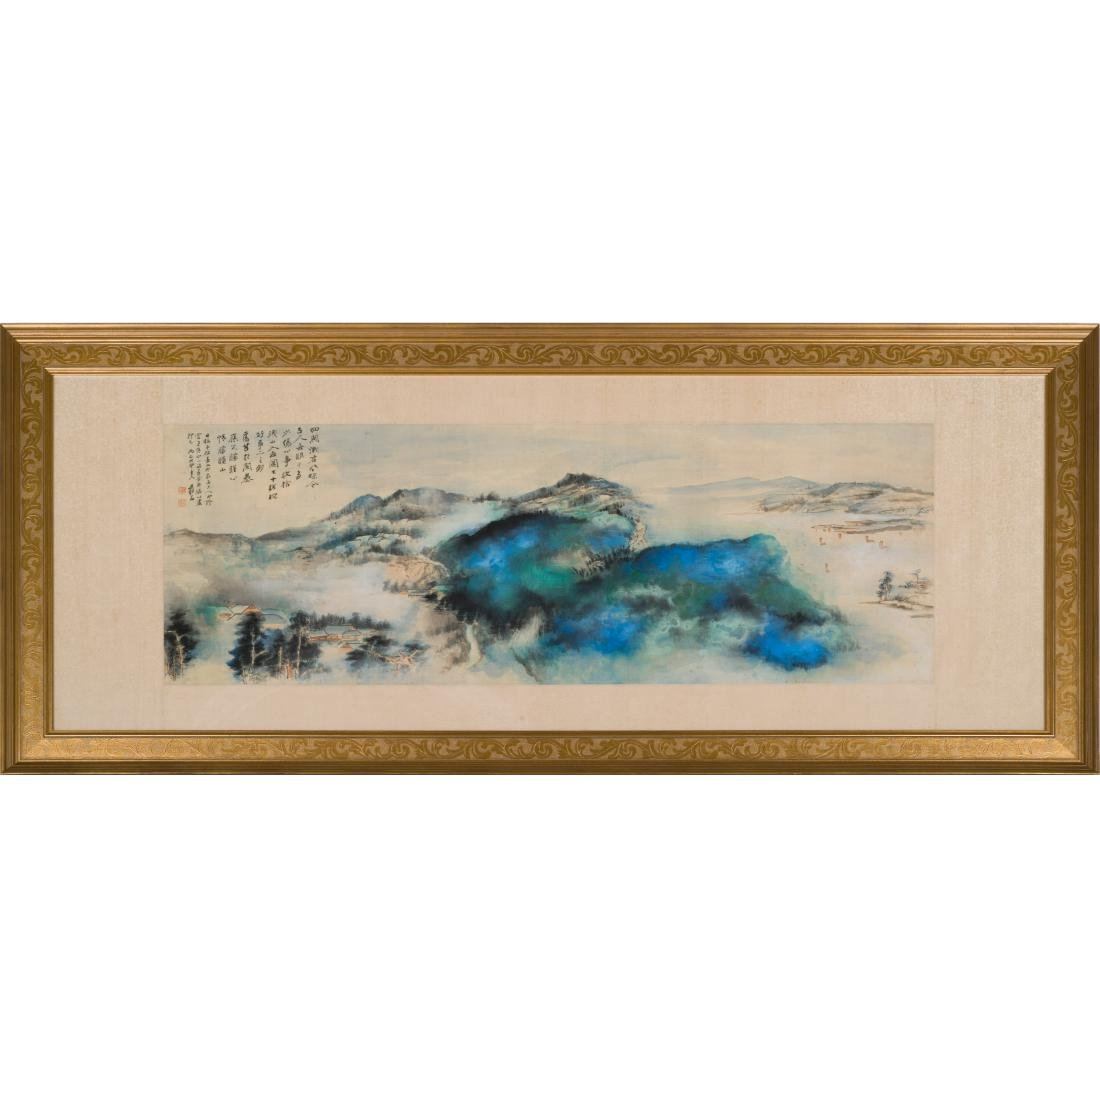 1968 ZHANG DAQIAN FRAMED BRILLIANT LANDSCAPE PAINTING - 2